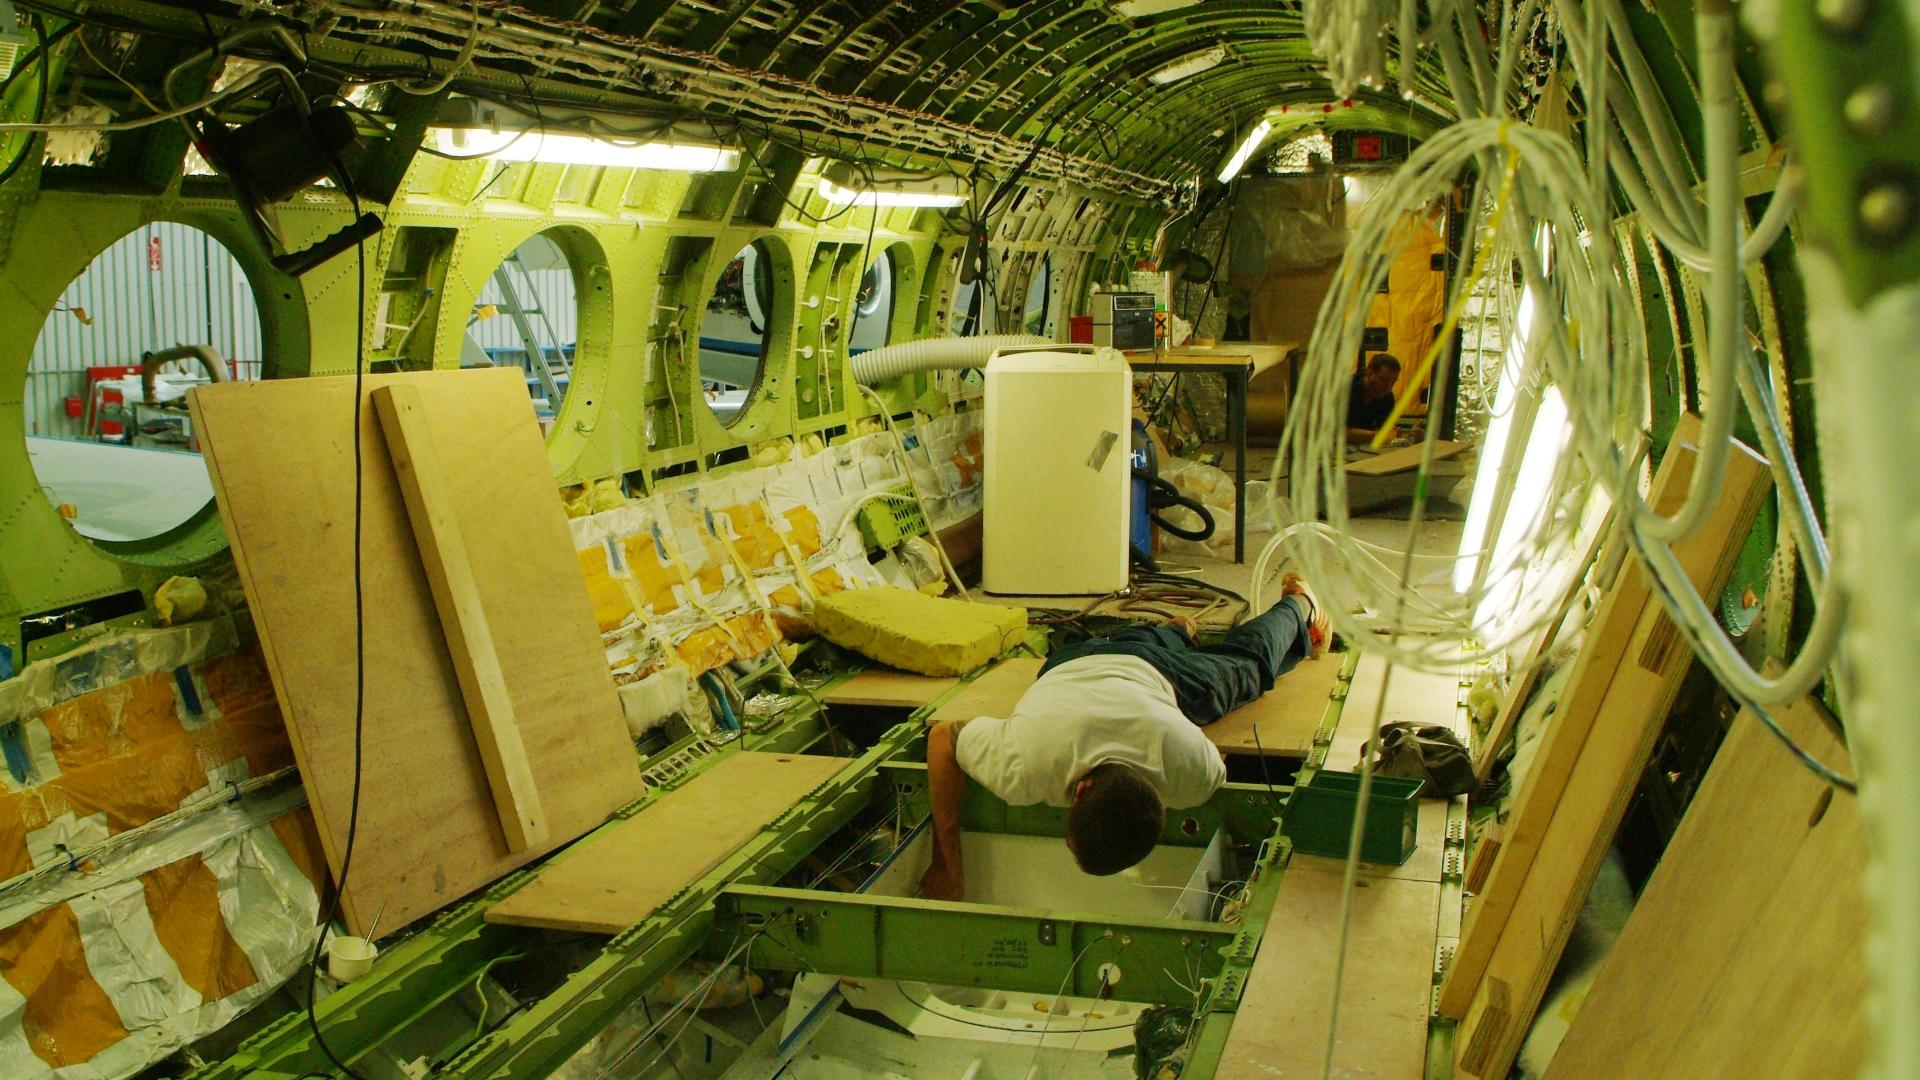 Extensive modifications in the interior of the HALO research aircraft